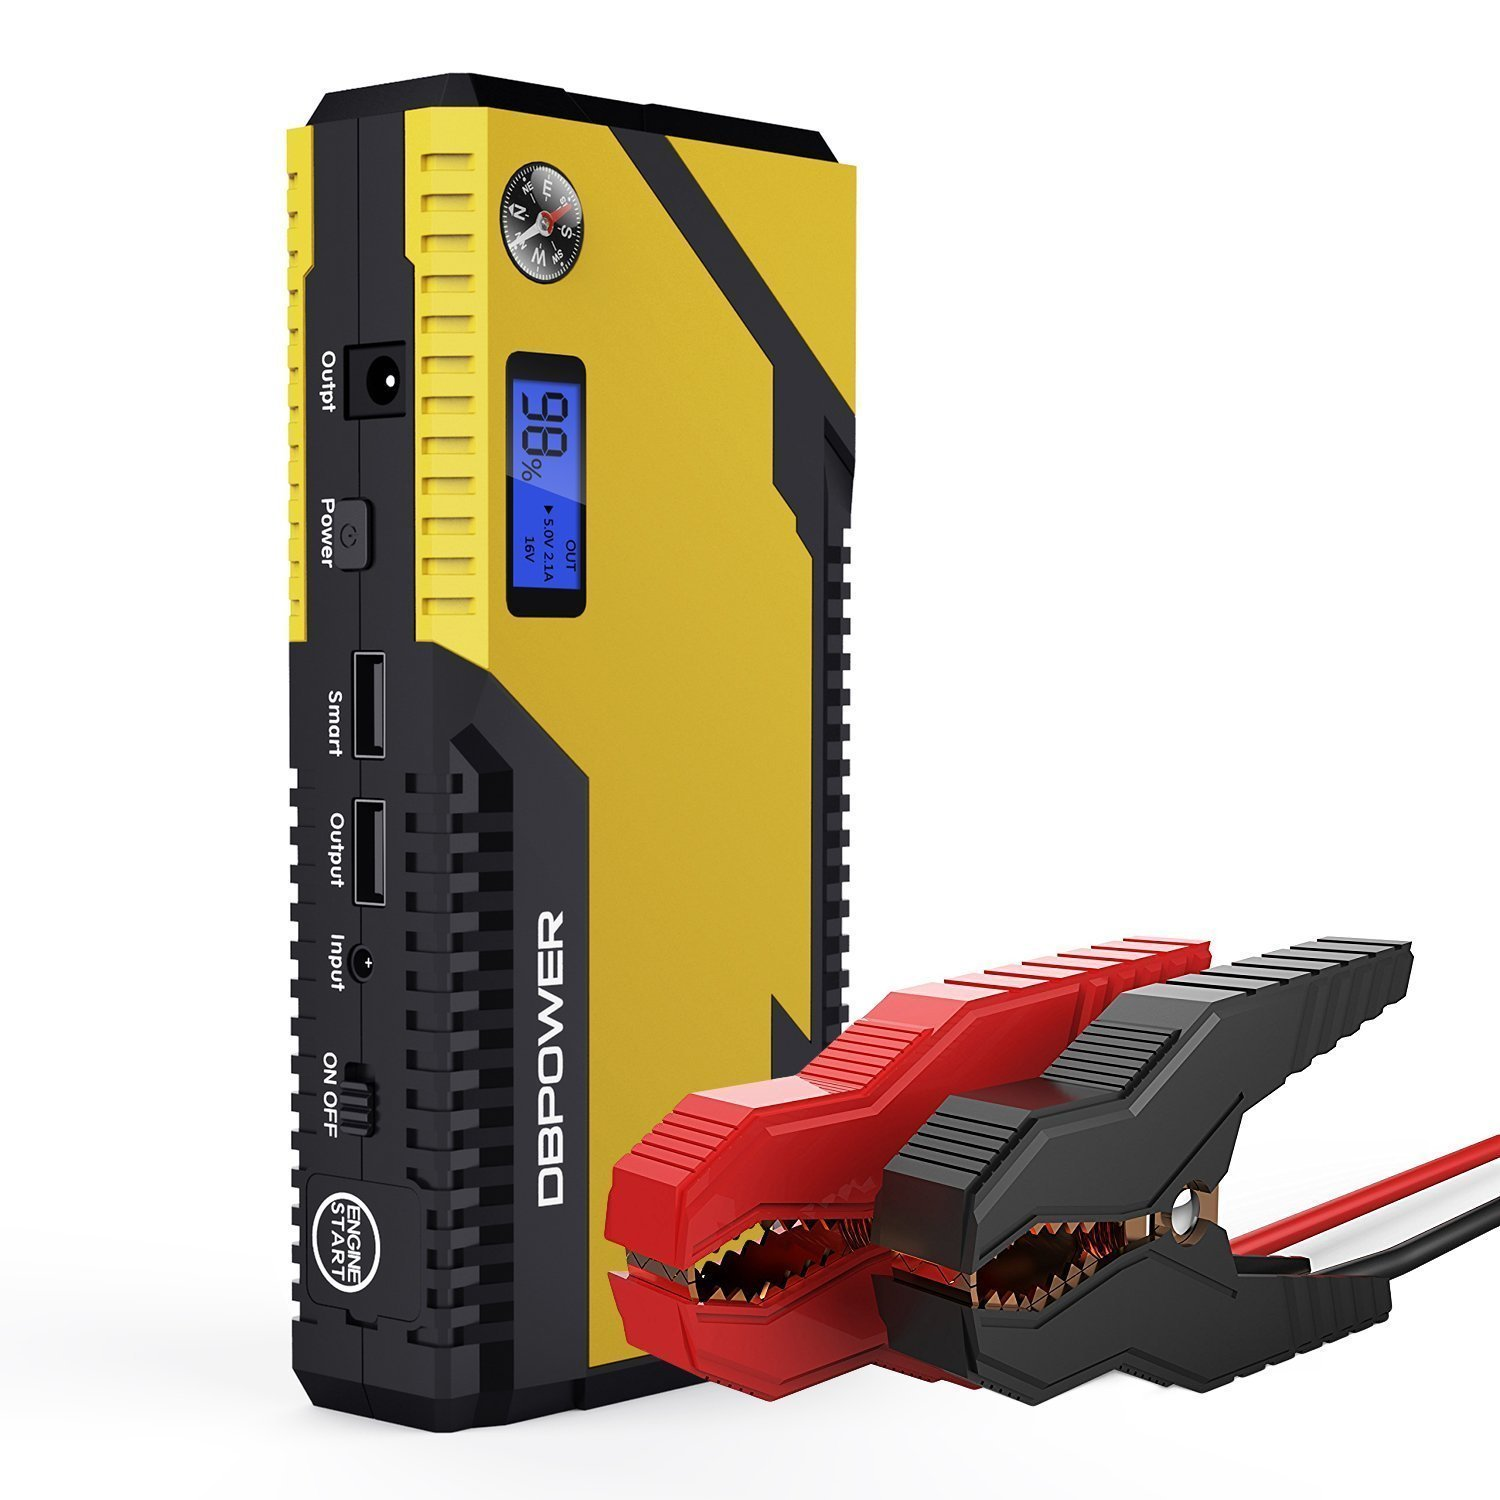 Dbpower 500a 12000mah Portable Car Jump Starter Emergency Battery Short Circuit Protection 12v 24v Truck Booster Pack With Dual Usb Charging Outputs Led Flashlight And Compass